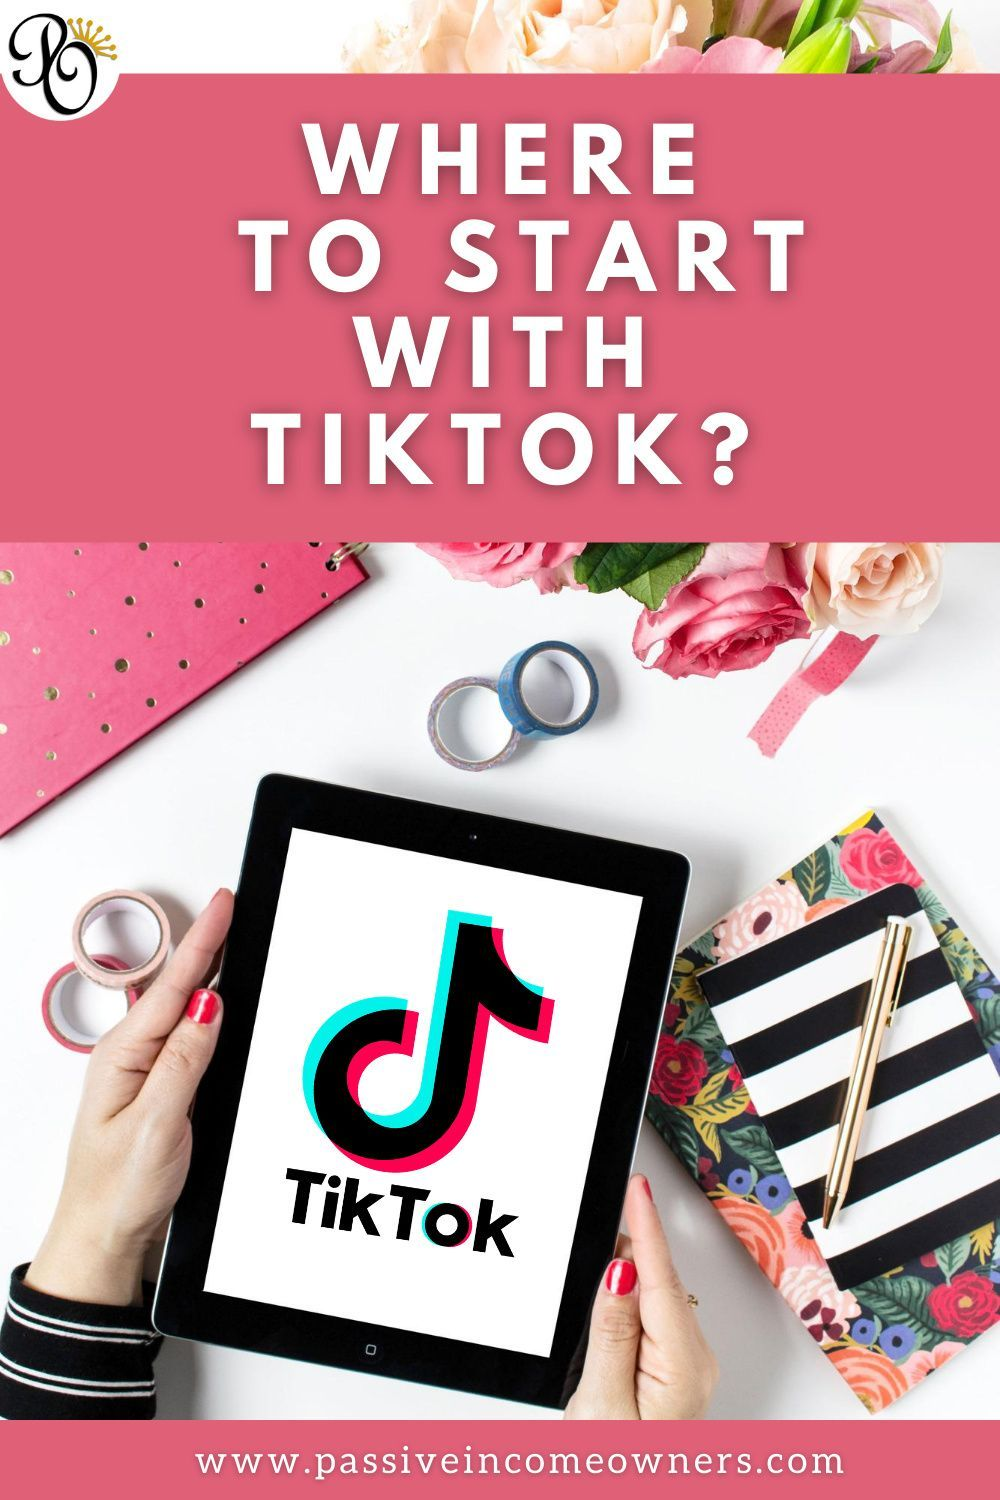 Where To Start With Tiktok Passive Income Owners Social Media Marketing Plan Marketing Plan Content Marketing